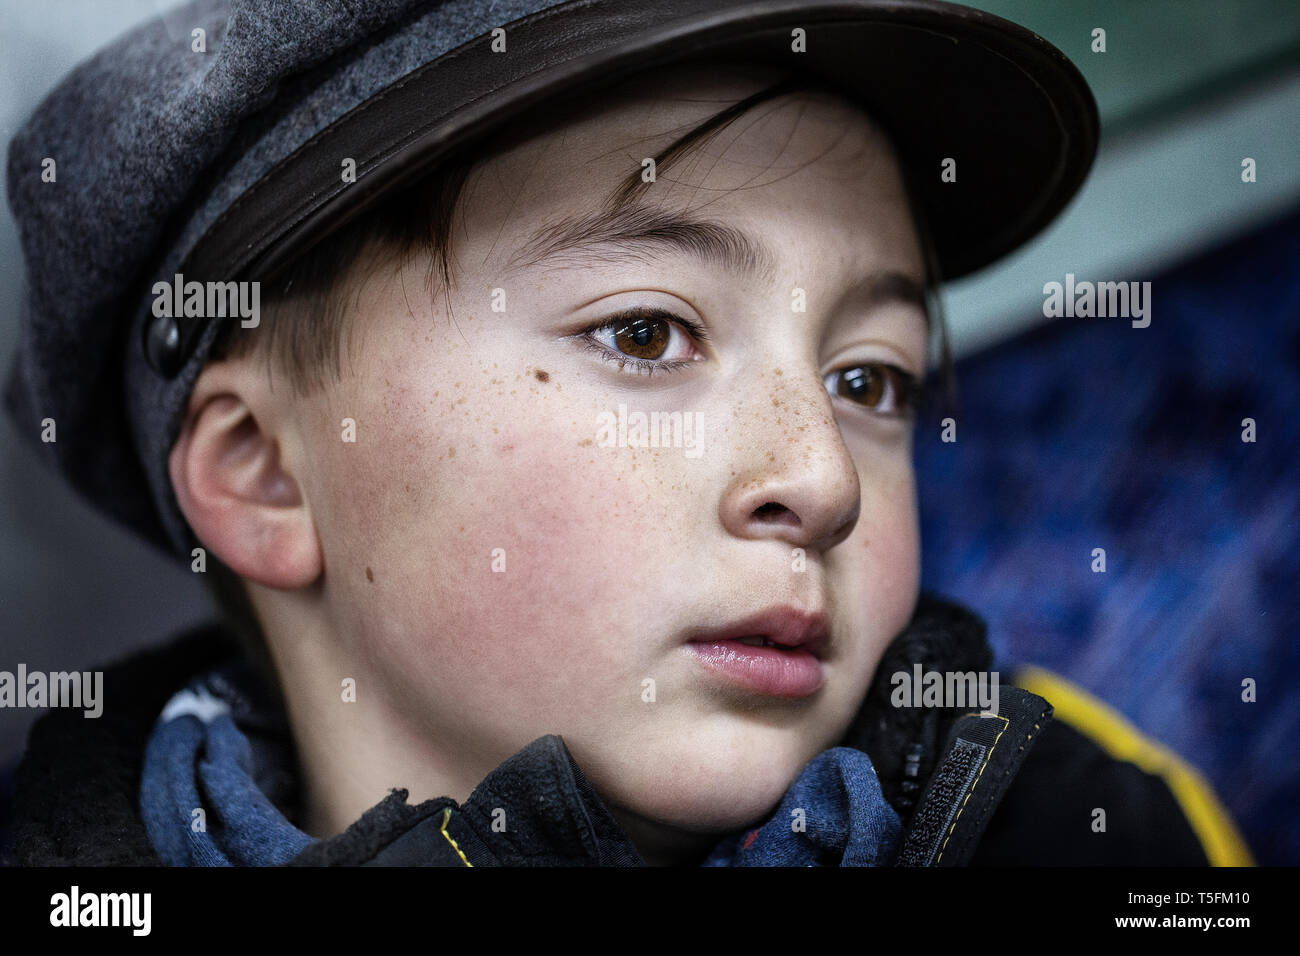 Mixed race Asian Caucasian boy in gray hat and blue scarf with red cheeks from the cold winter air - Stock Image